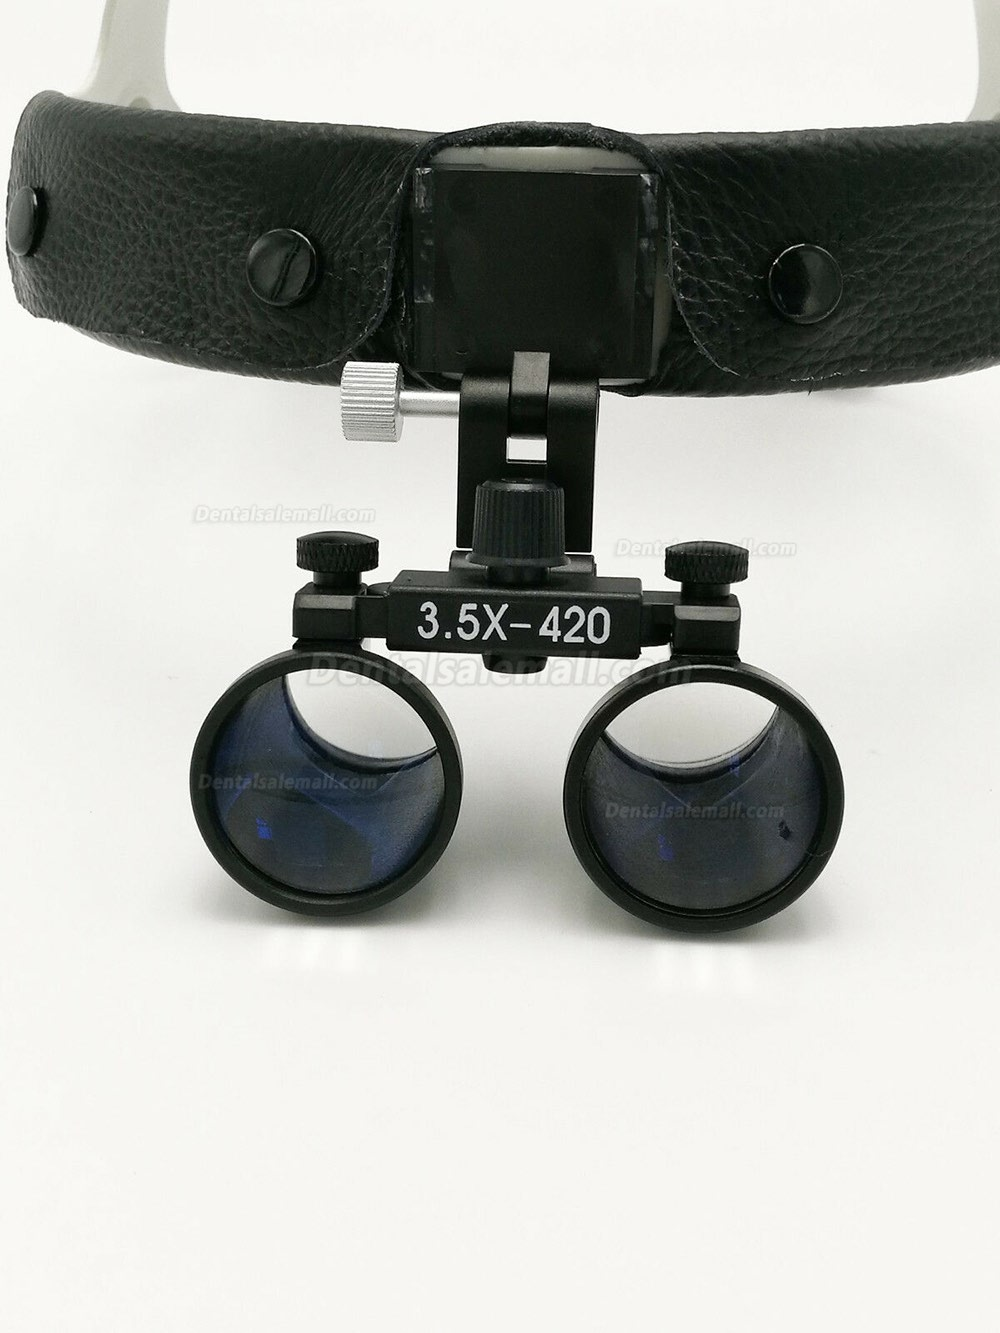 3.5X420mm Dental Surgical Binocular Leather Headband Loupe + LED Headlight Black